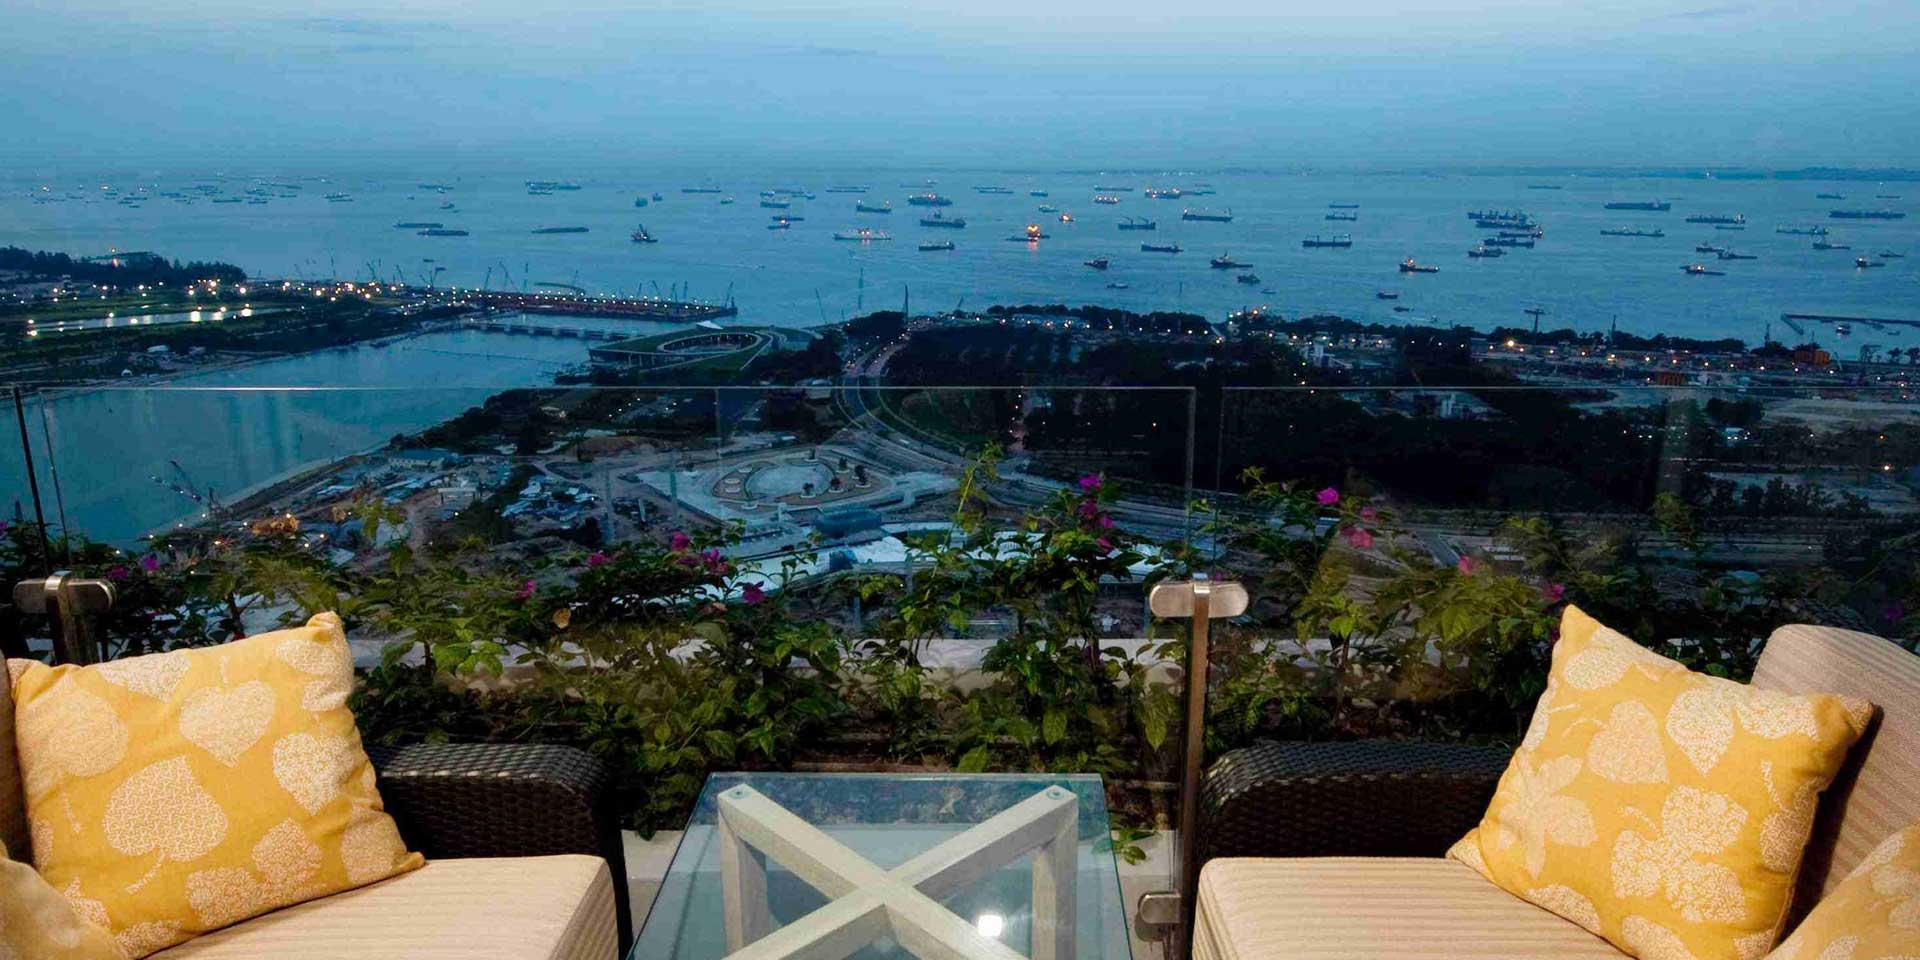 Chairman Suite with Garden View at Marina Bay Sands